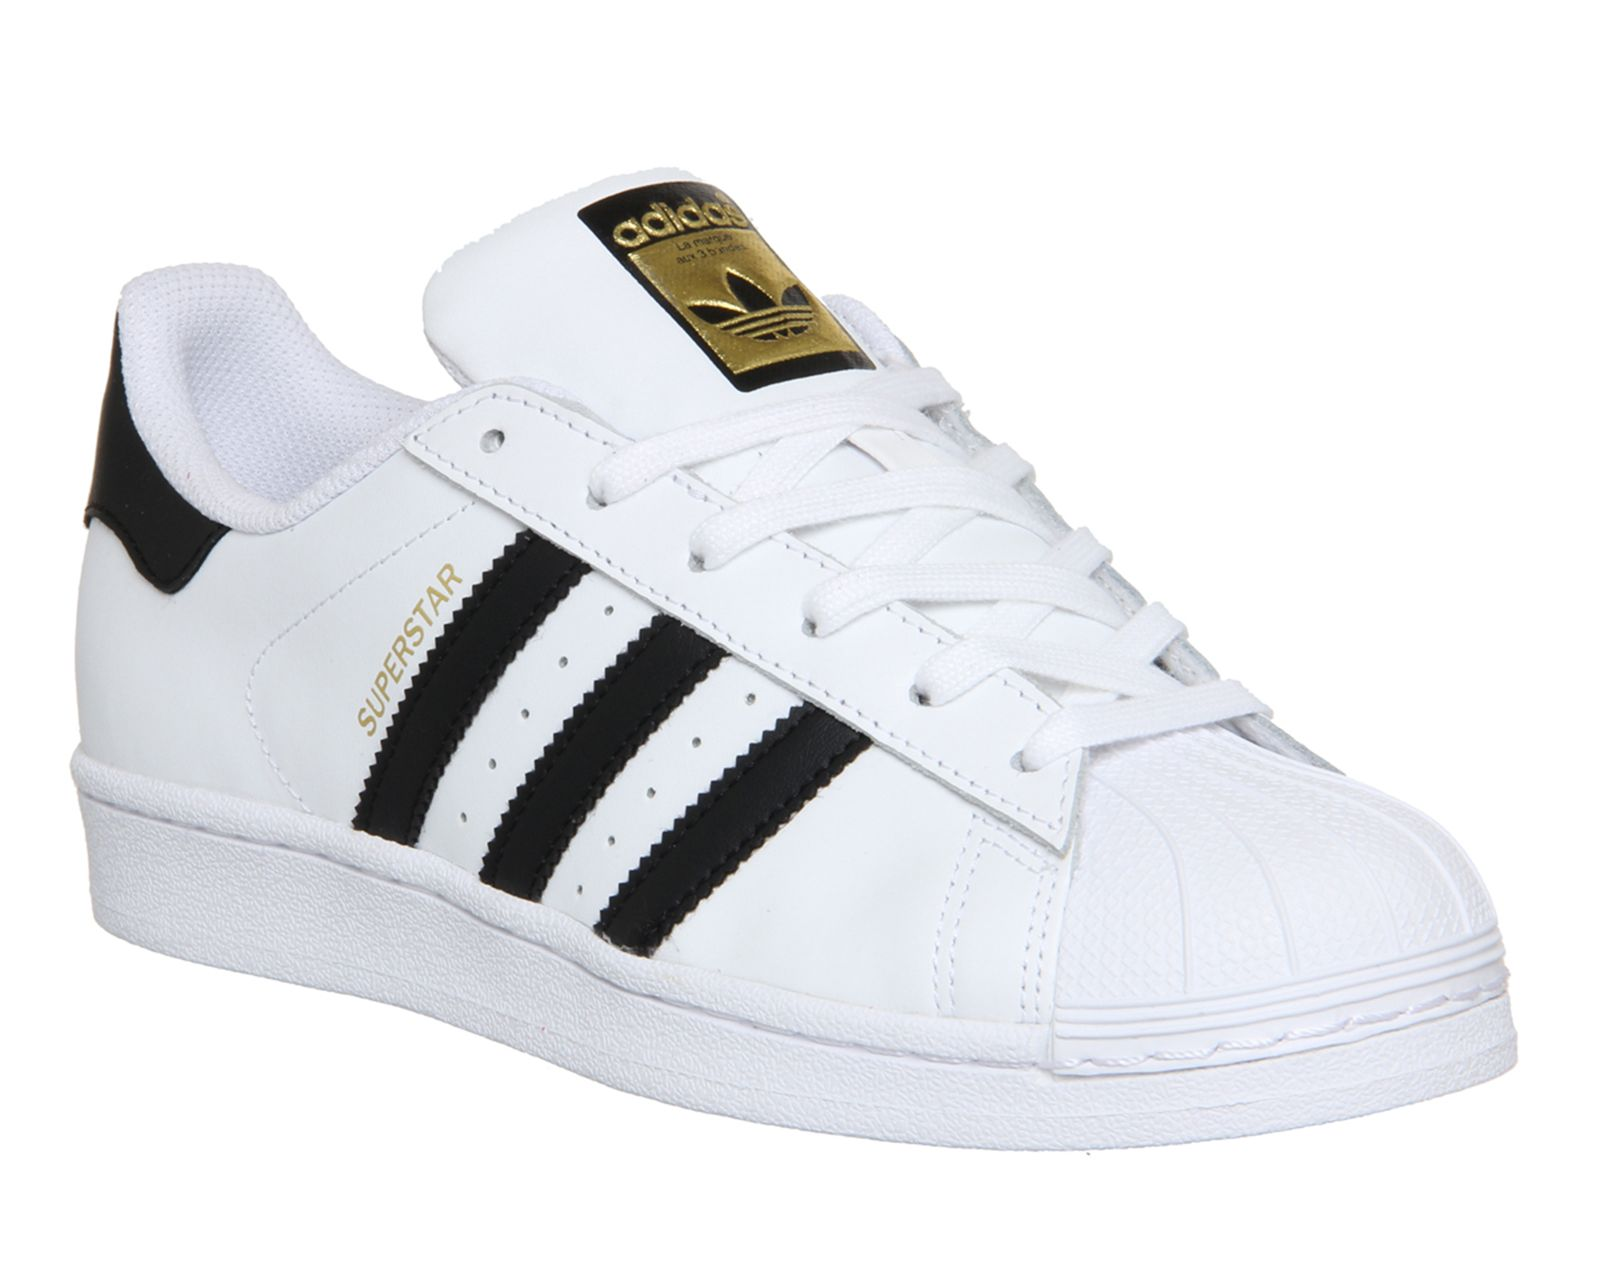 7412955300a Buy White Black Foundation Adidas Superstar GS from OFFICE.co.uk ...